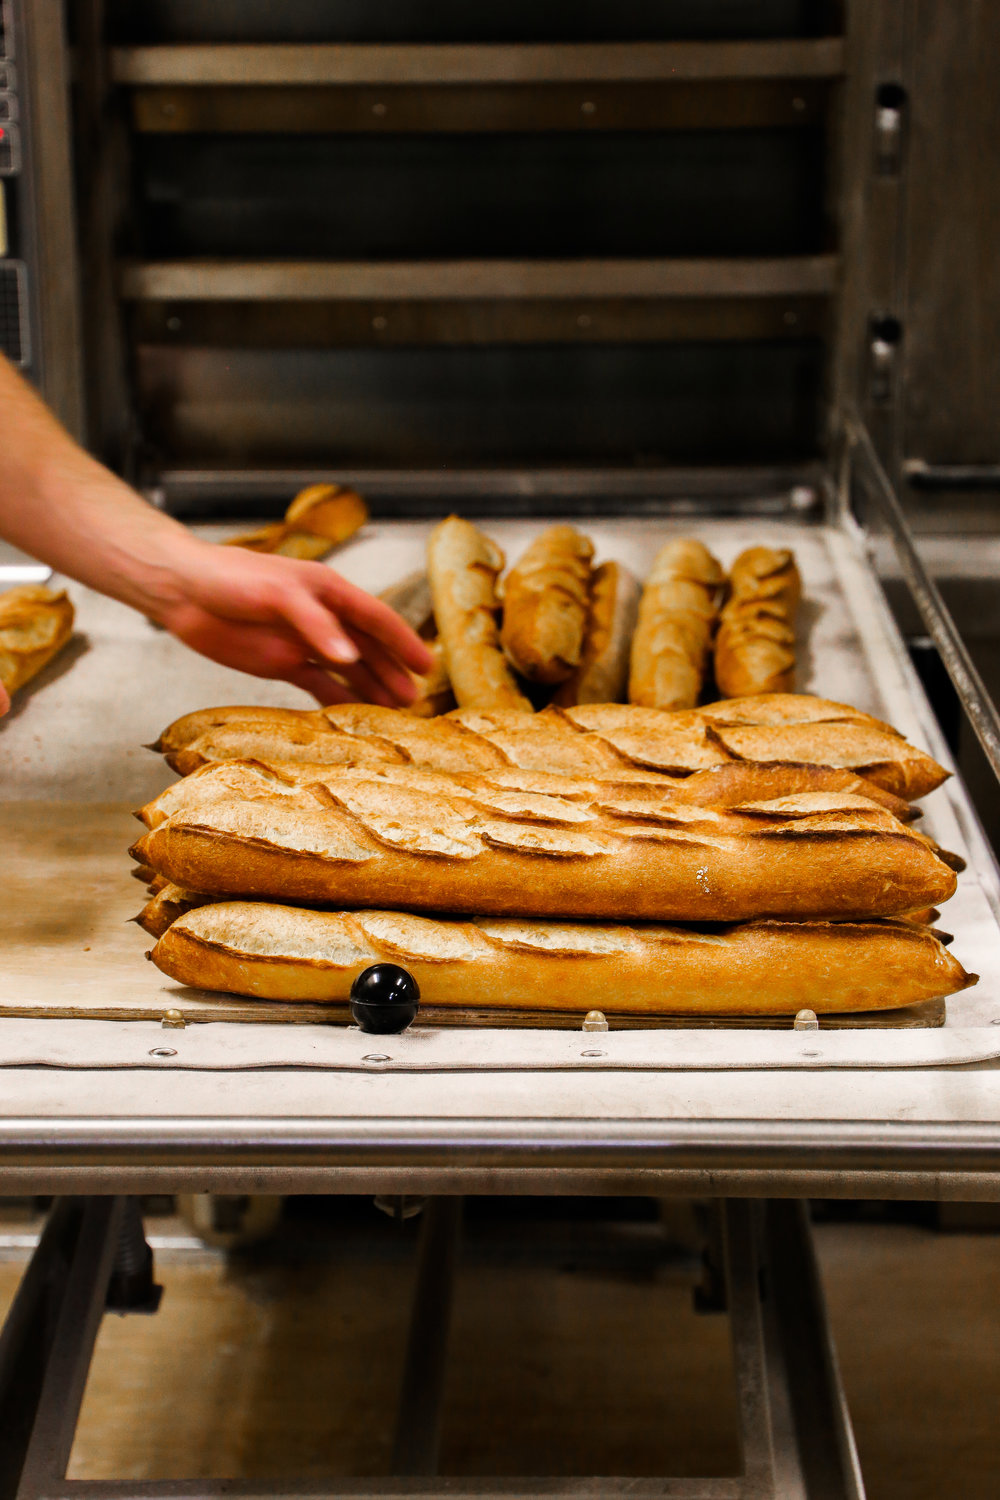 Baguettes for days